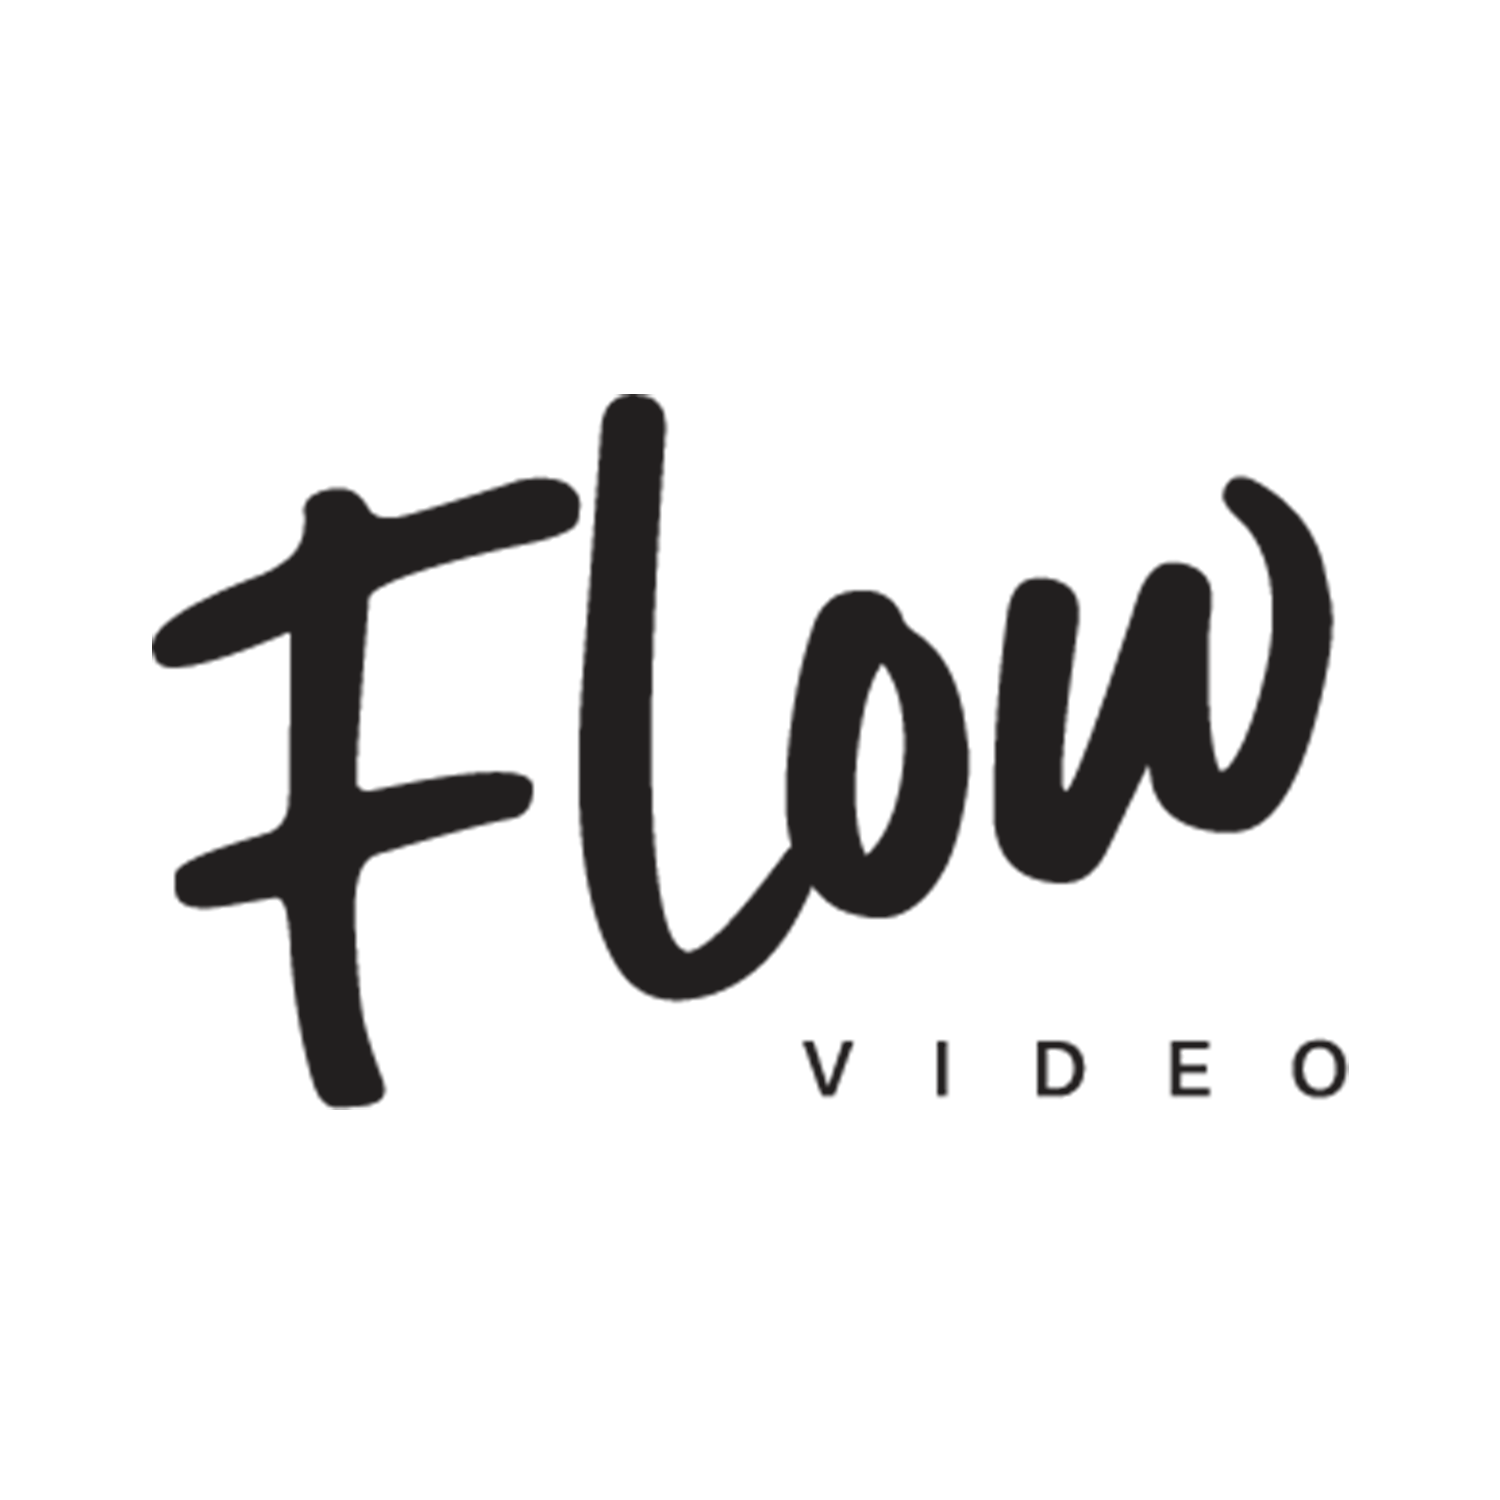 Flow Video.png